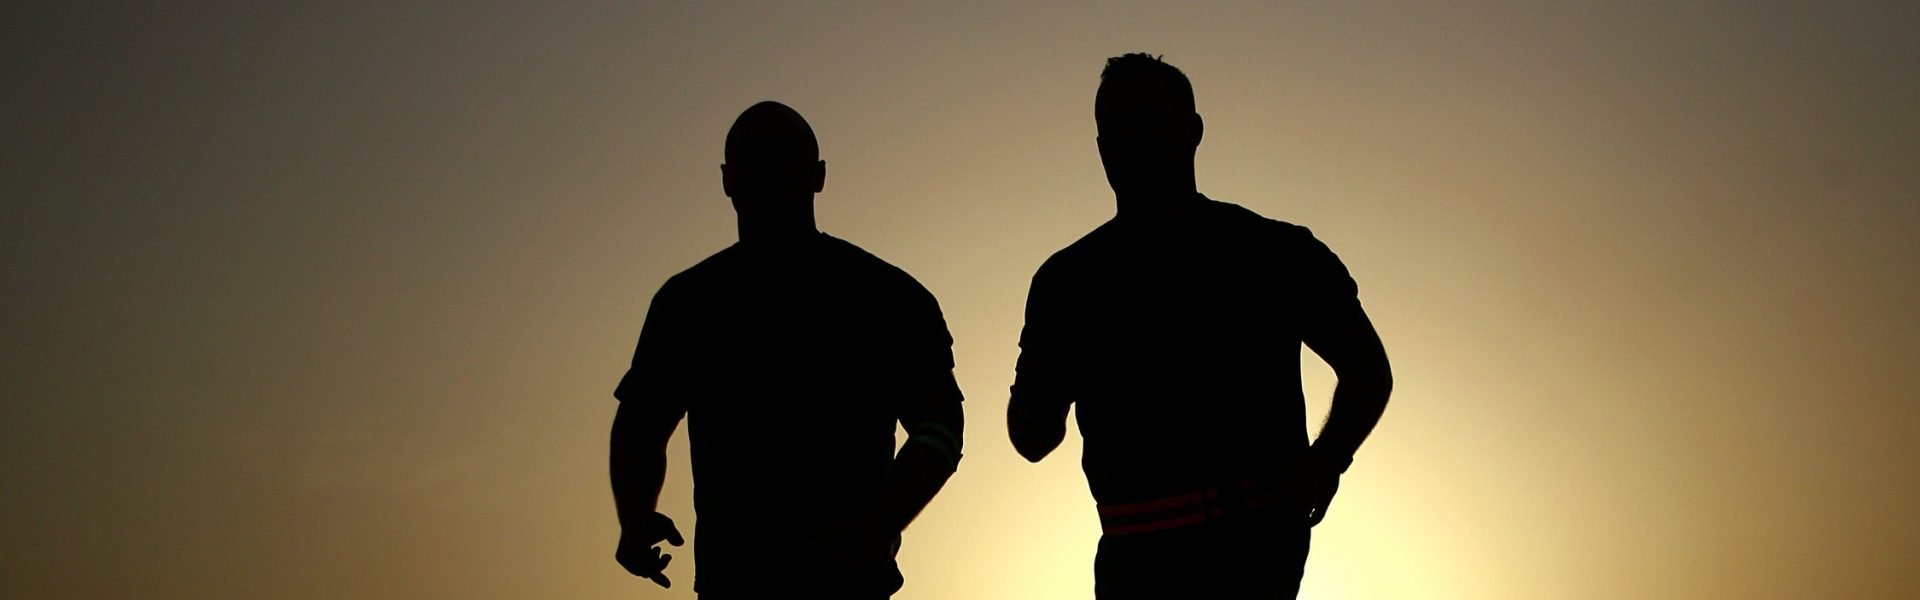 running people silhouette, fitness insurance